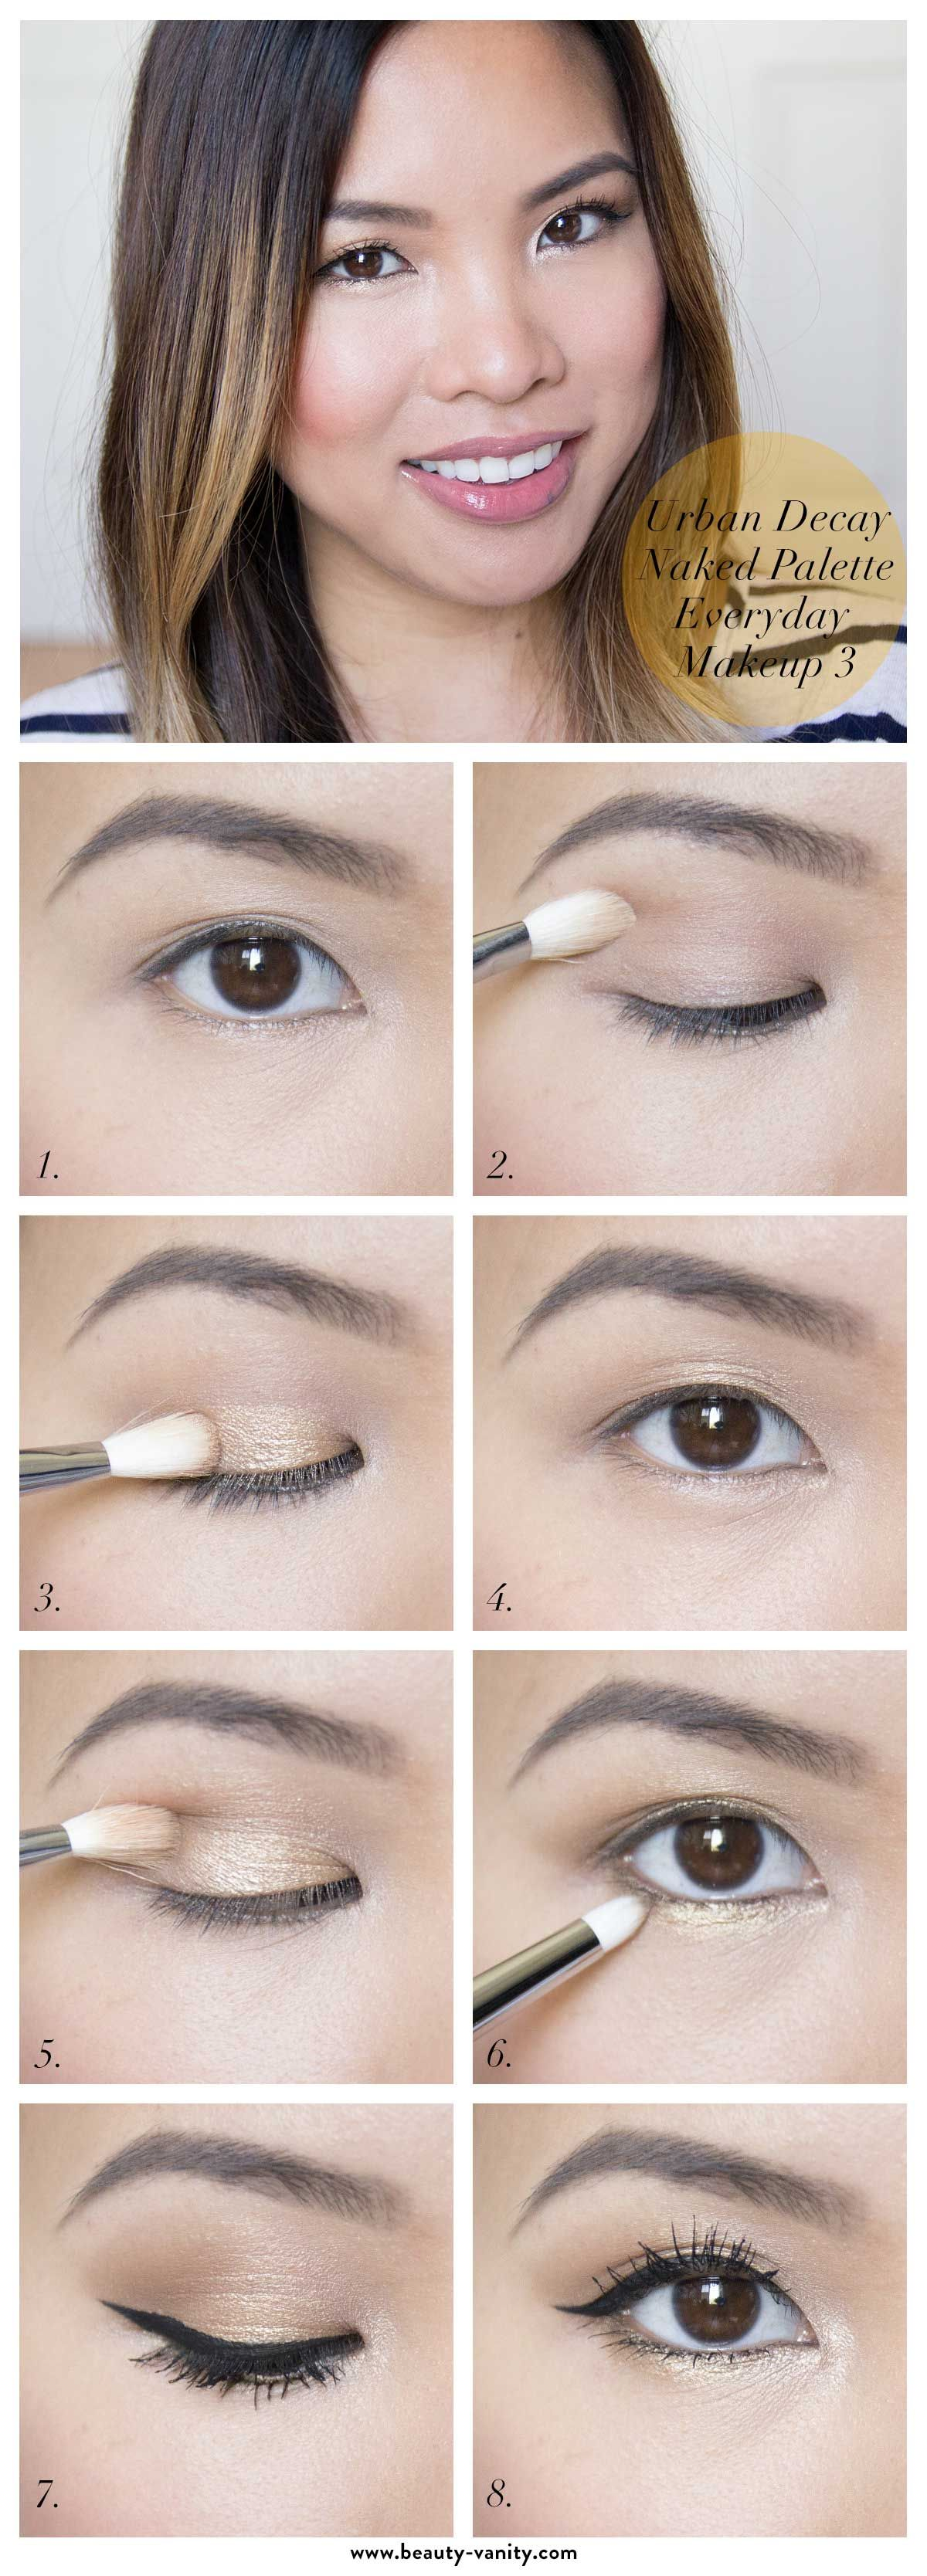 The Beauty Vanity  Urban Decay Naked Palette Gold Everyday Makeup Tutorial  For Asian & Hooded